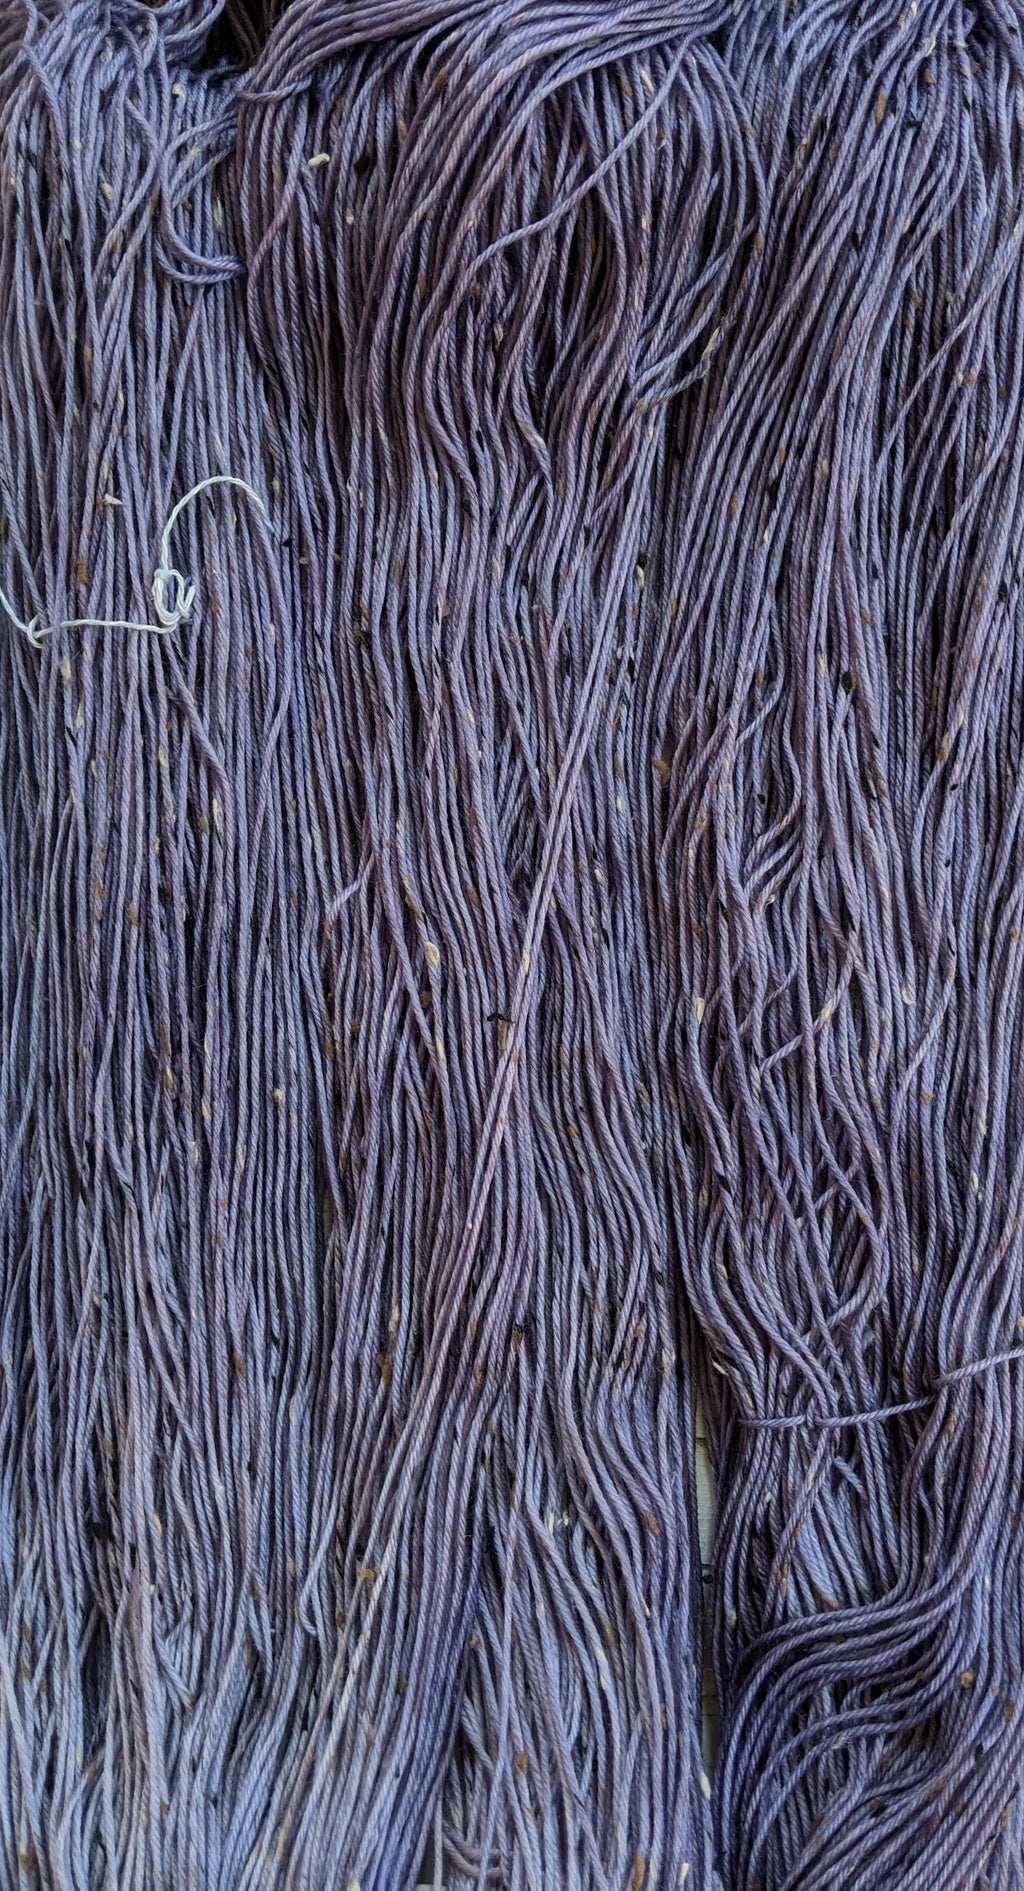 Grurple - Birch Hollow Fibers